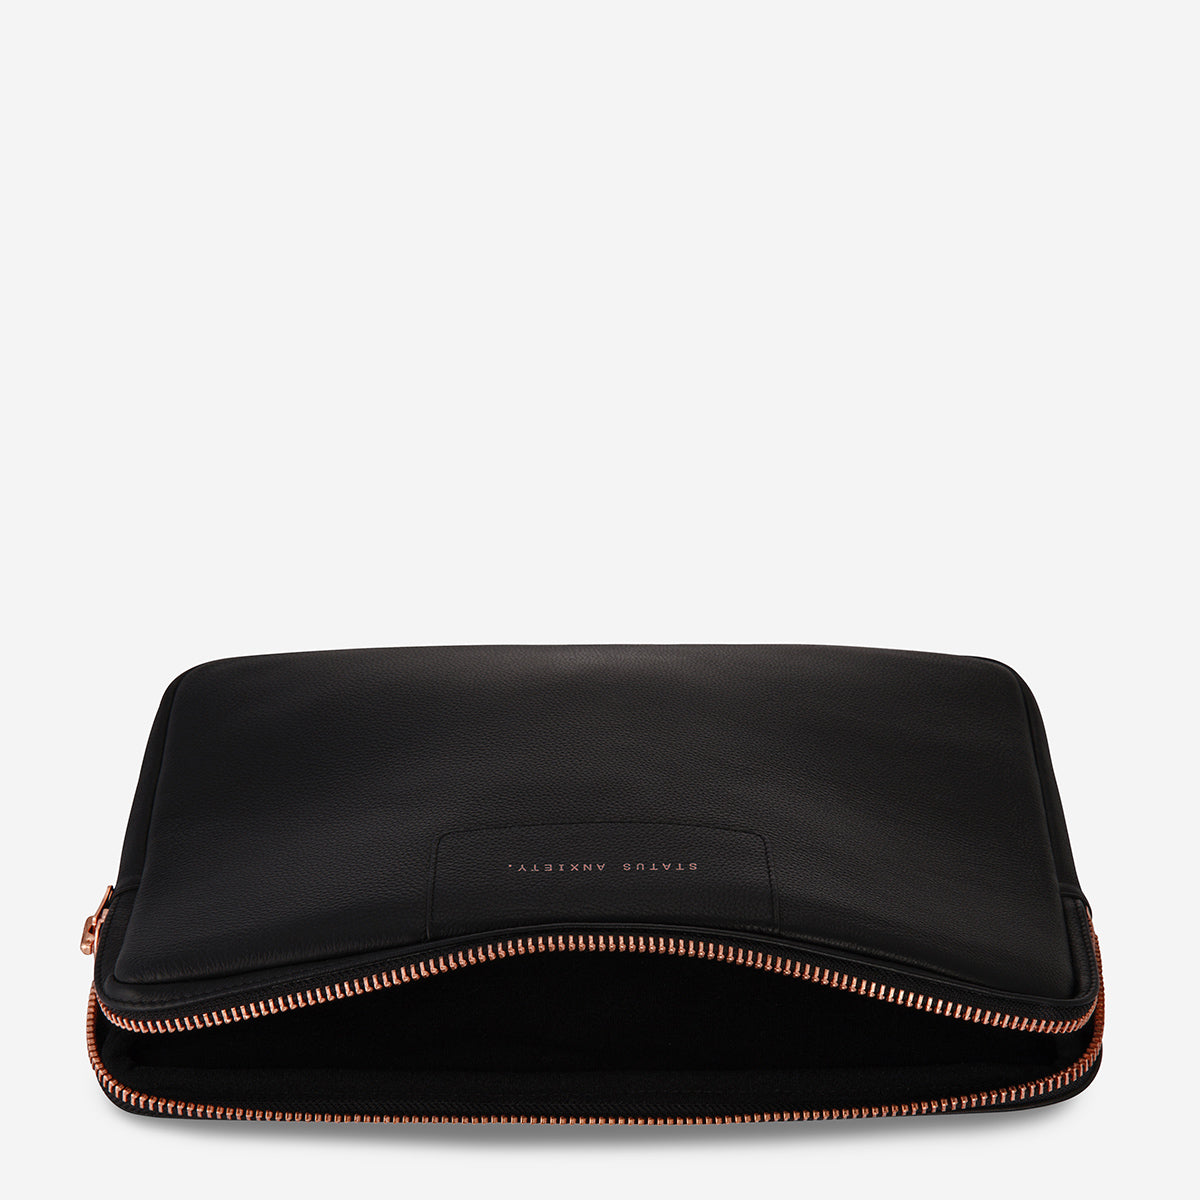 Status Anxiety Before I Leave Leather Laptop Case - Black/Rose Gold